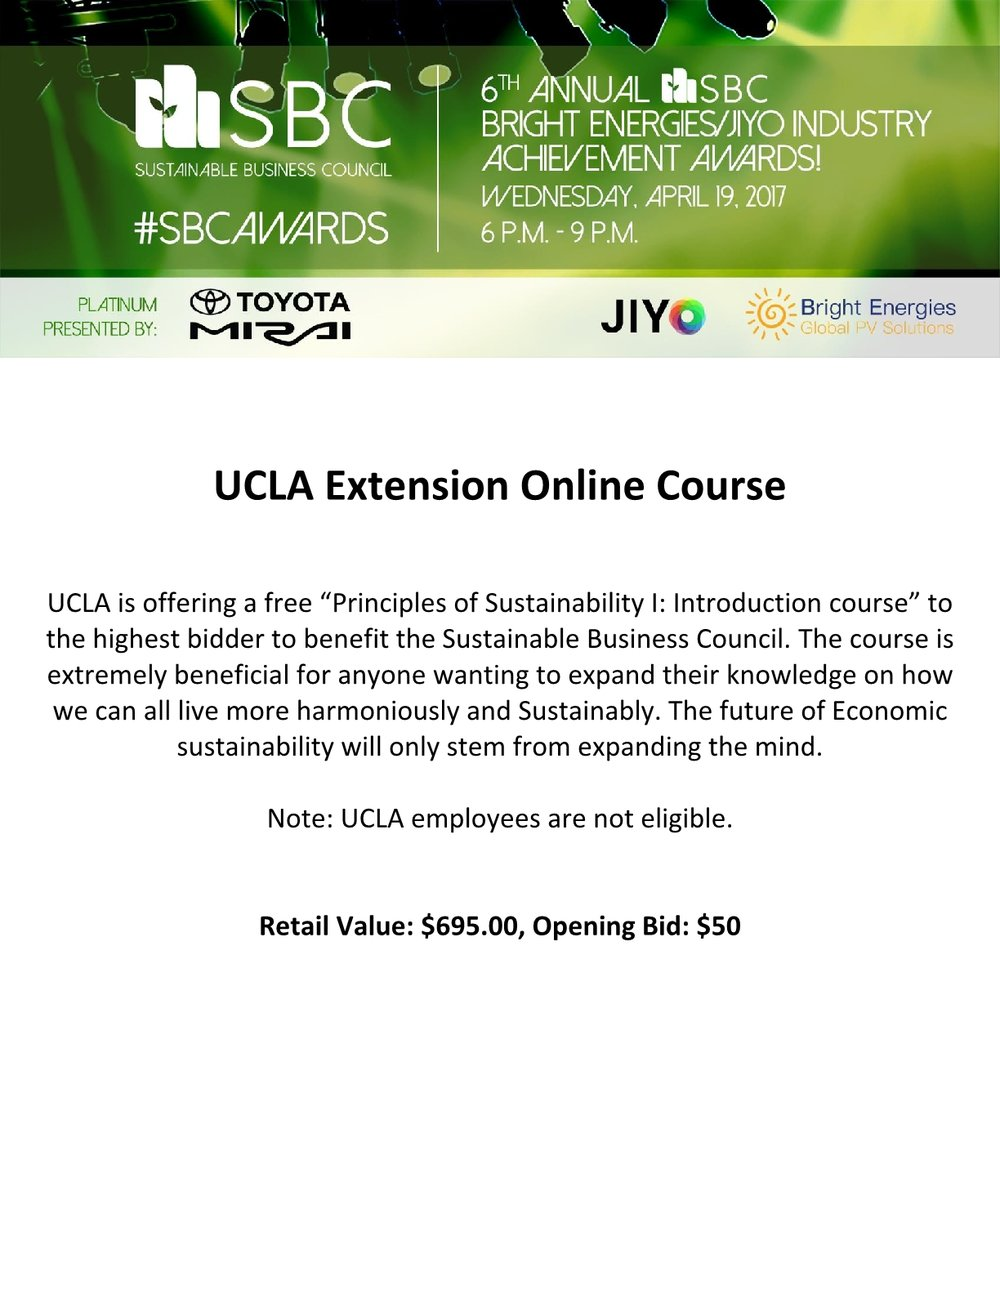 SBC- UCLA Extension Course Silent1.jpg